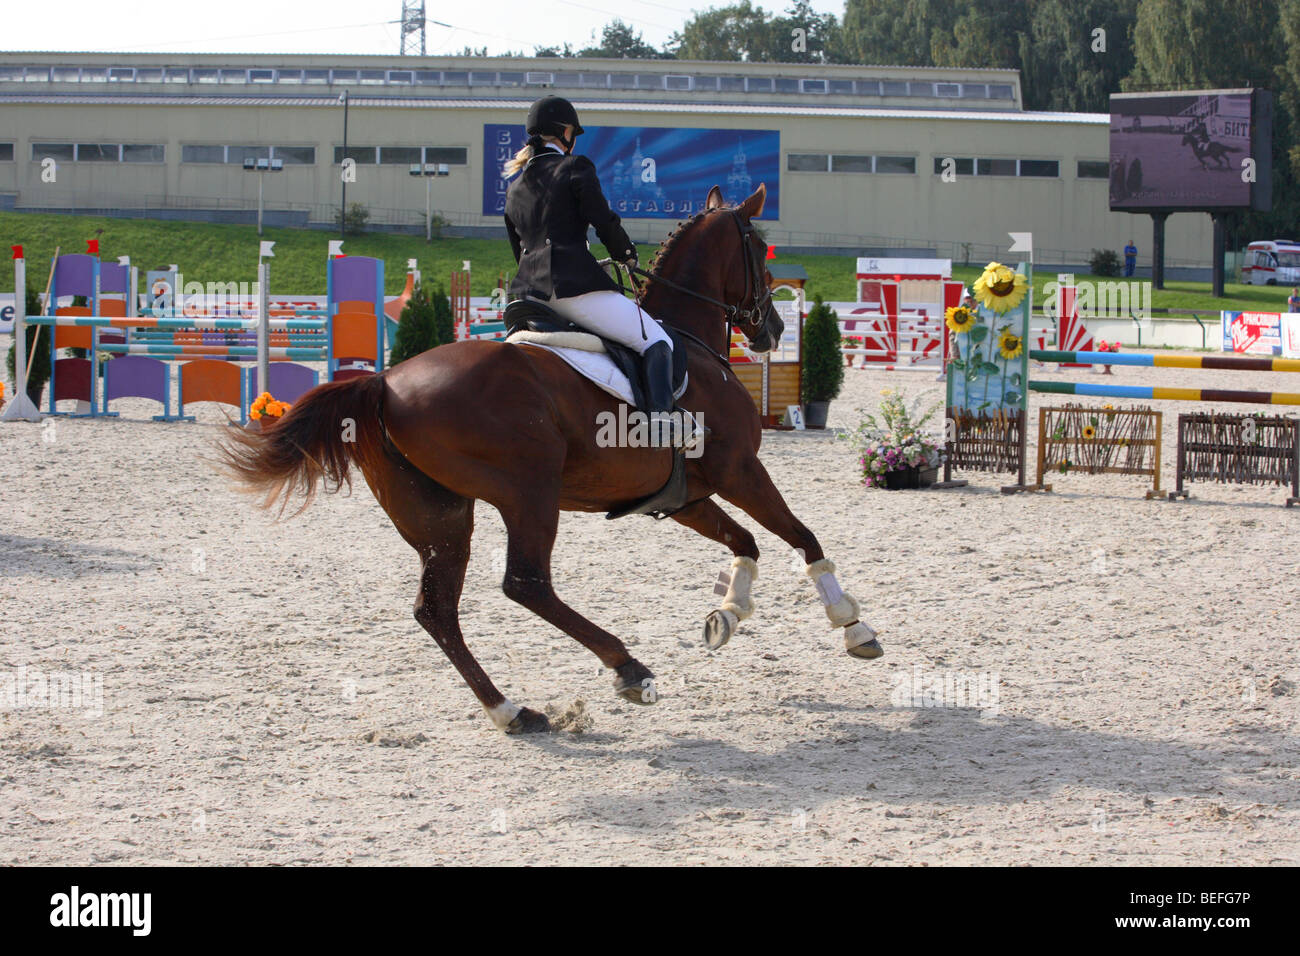 Horserider at a canter in showjumping arena at Moscow horse eventing competition 2009 - Stock Image